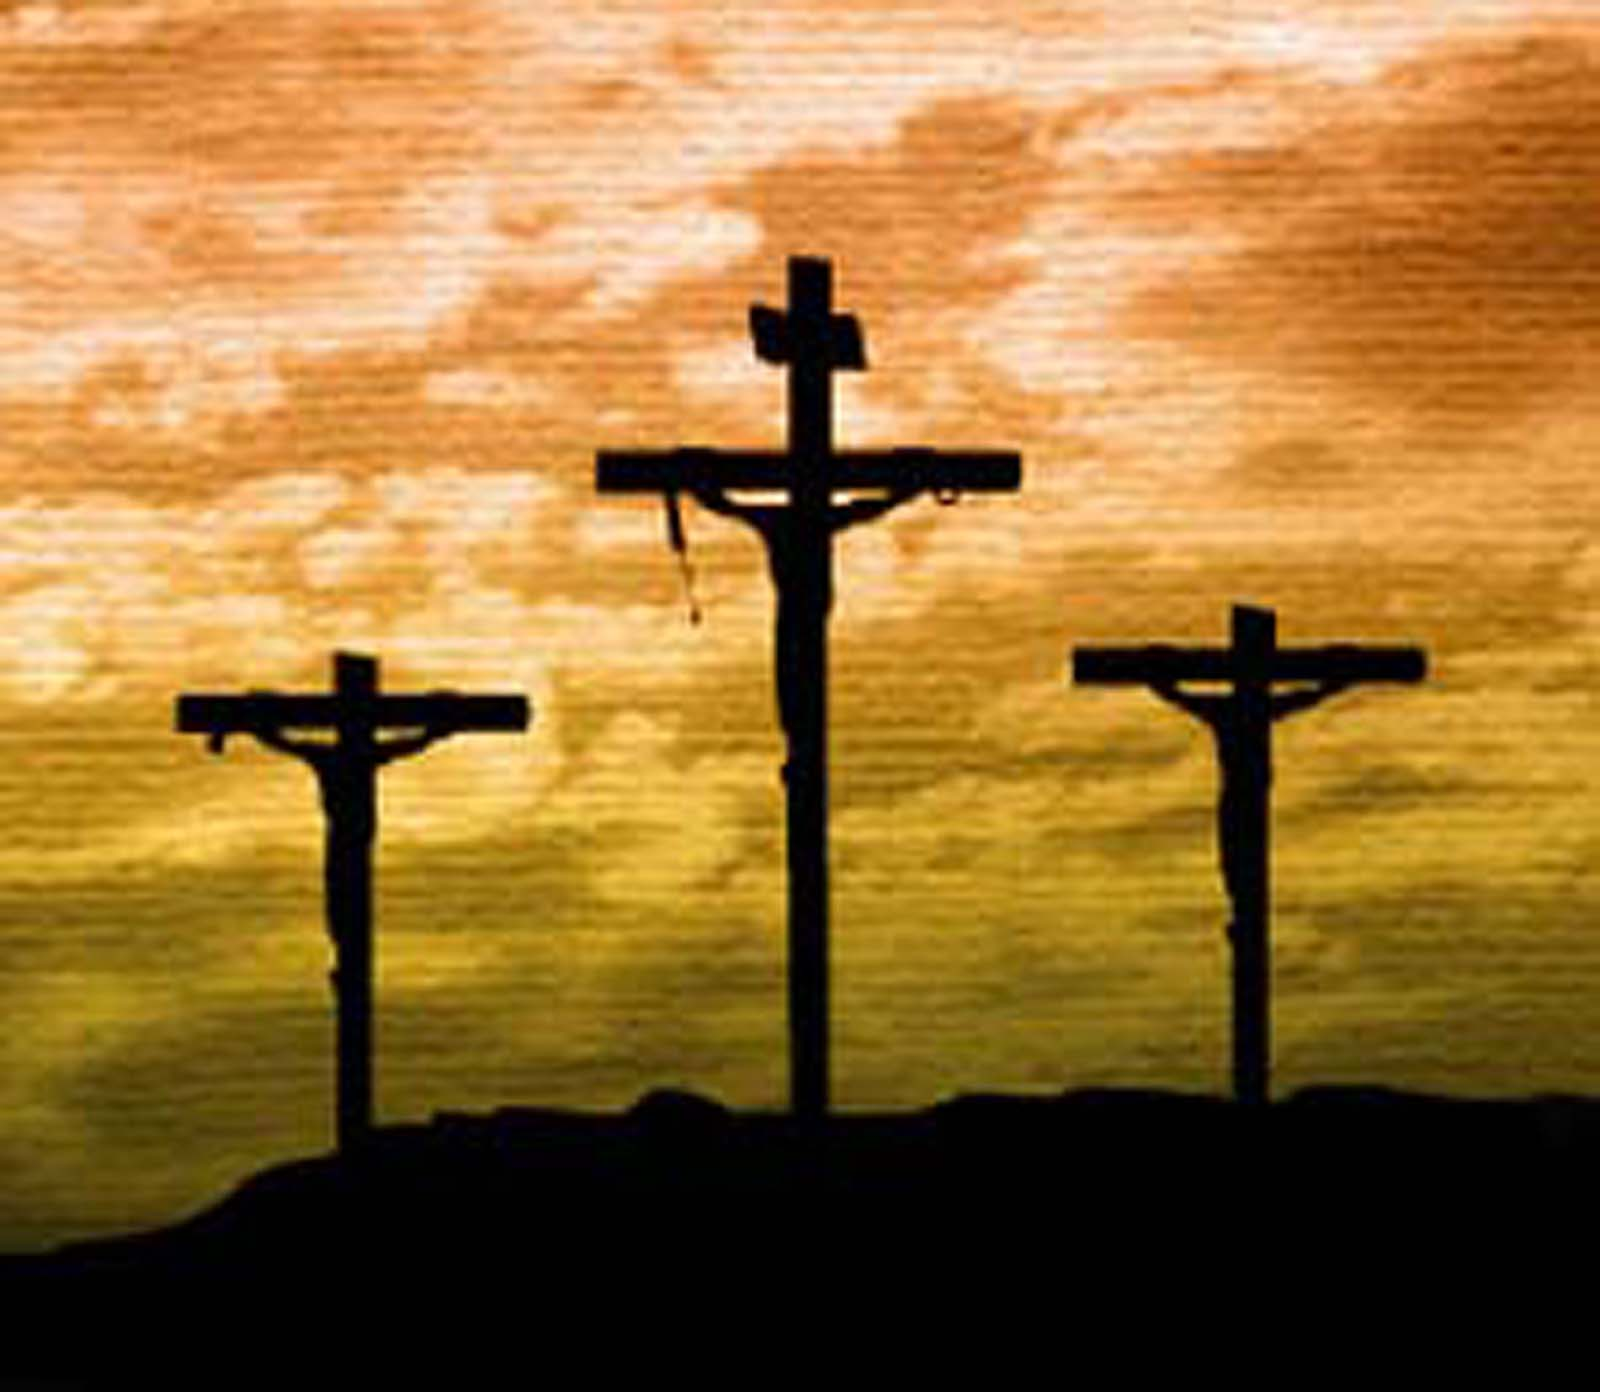 African Dreams......: The Cross of Christ